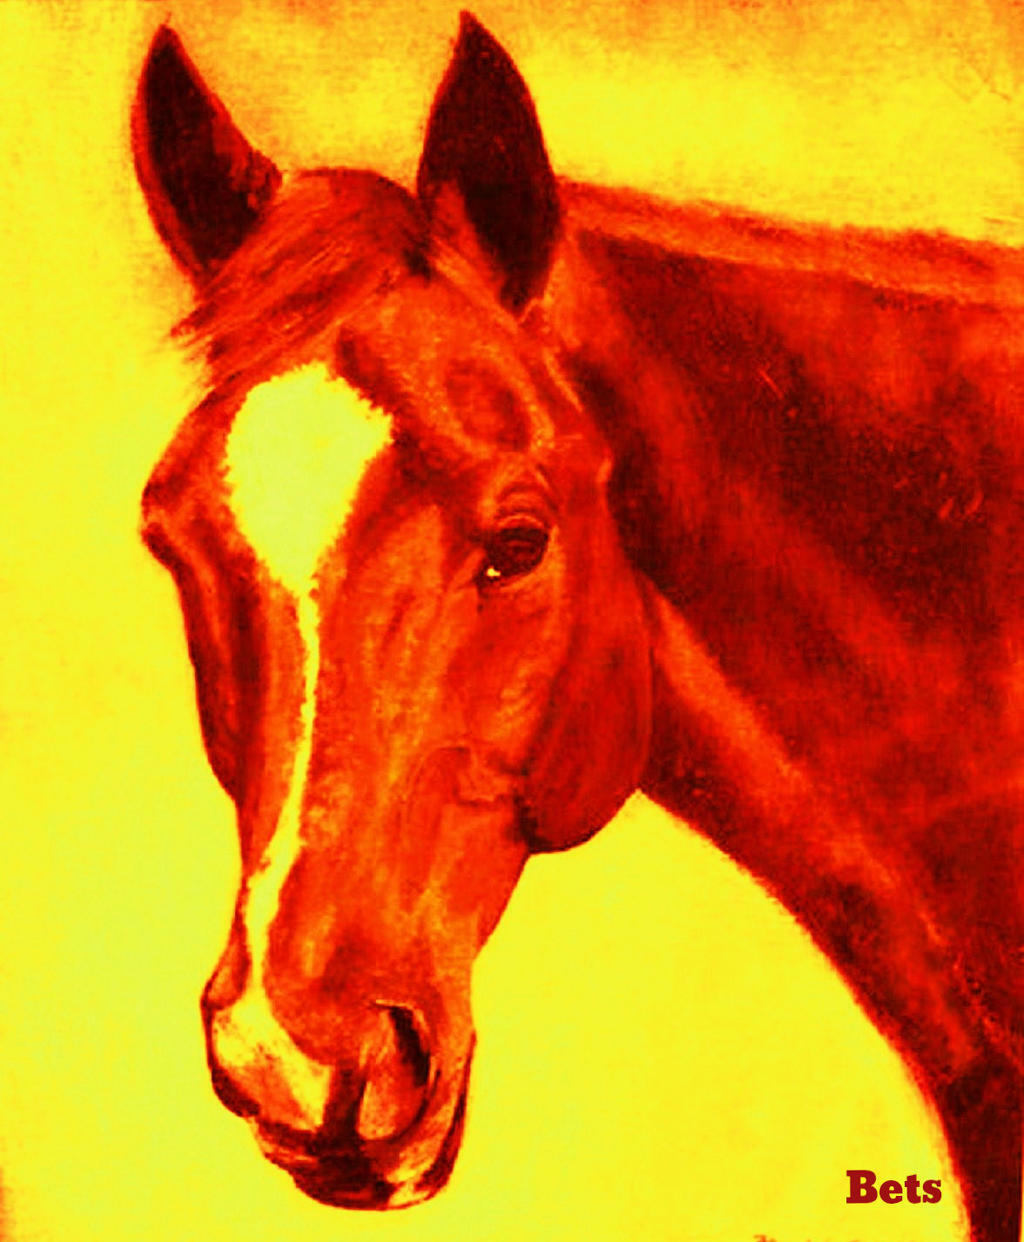 HORSE PRINT Giclee CHESTNUT Horse MADURO artist  BETS 6 COLORS print size 15 X 18  high quality & fast shipping